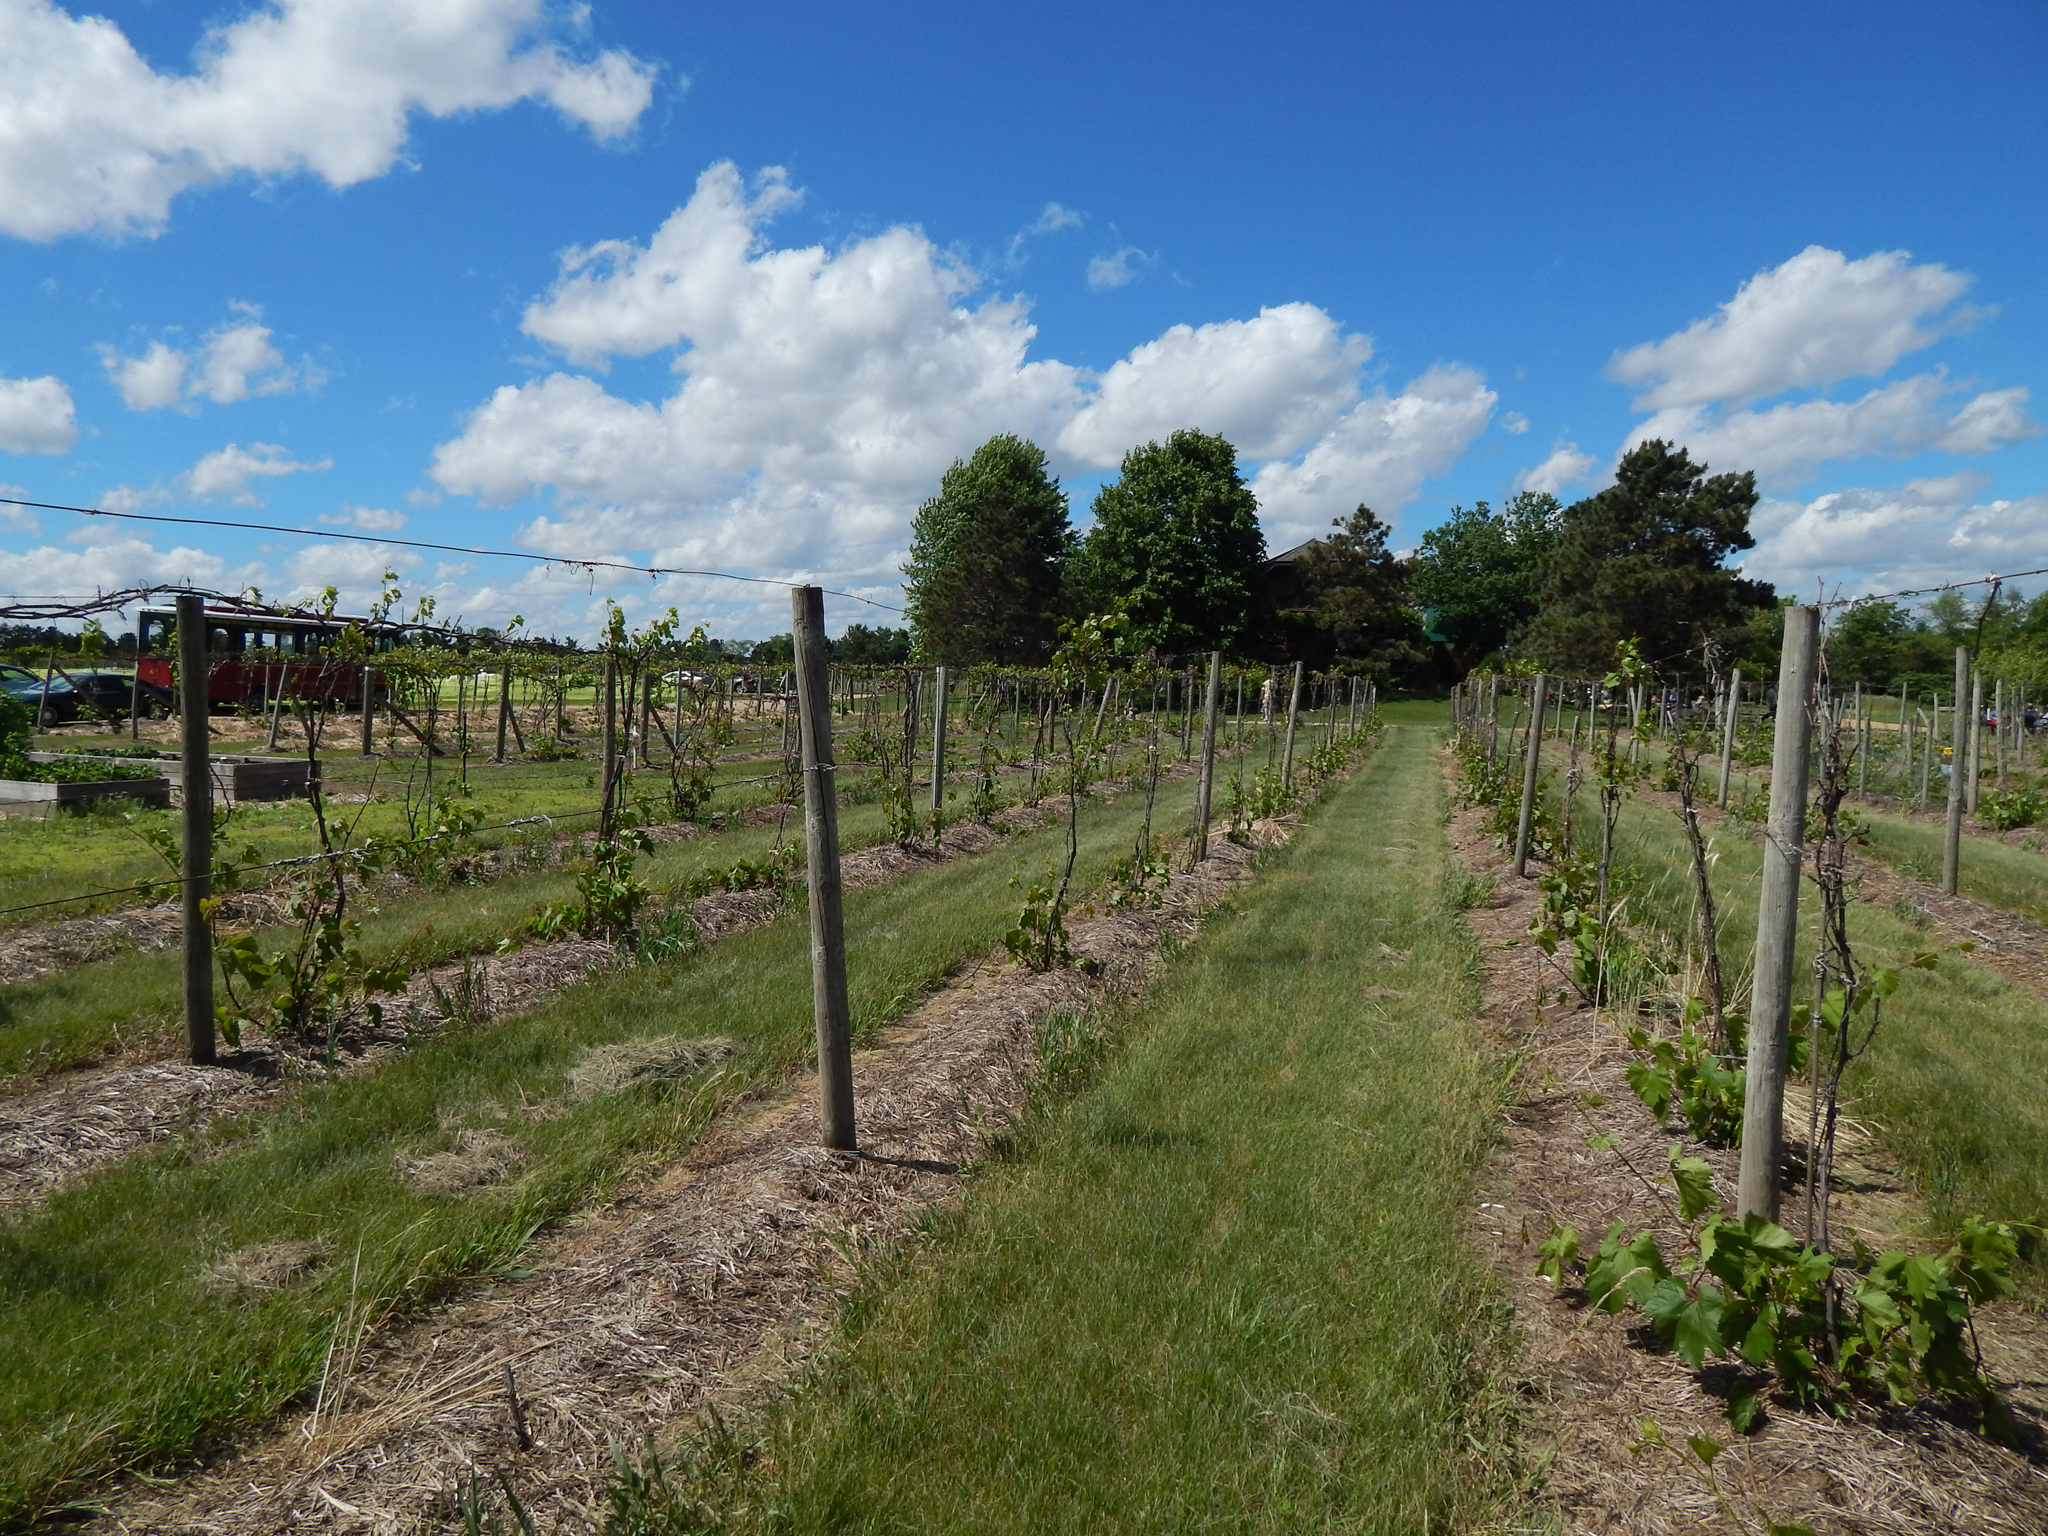 It was a beautiful day and my friend Melissa and I strolled through the vineyard as we sampled wine.